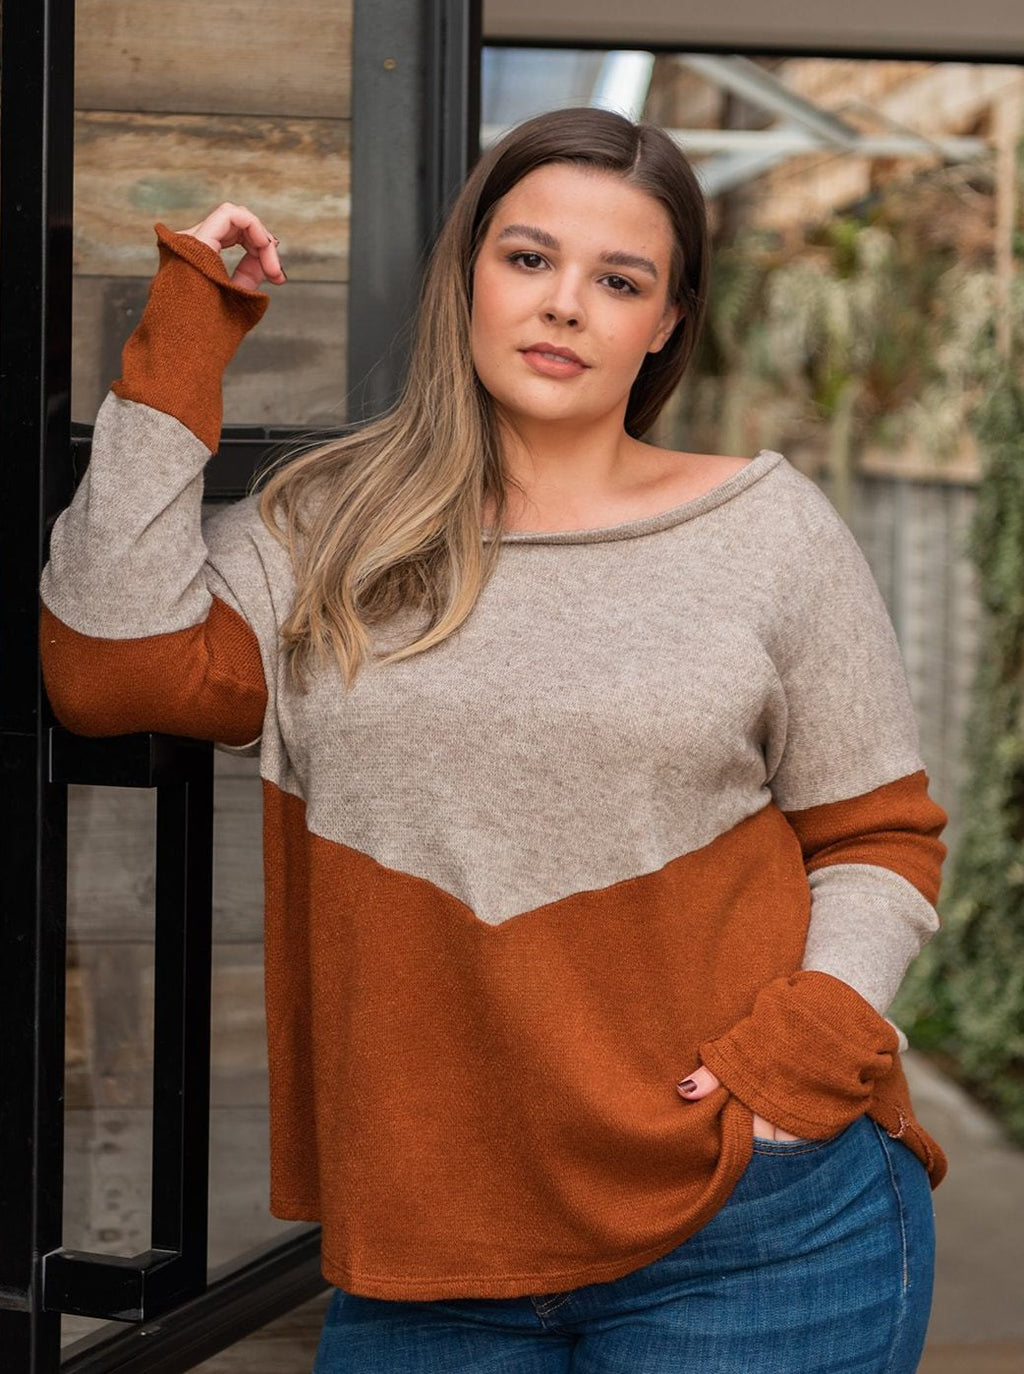 "This top features: Rust and Oatmeal Two toned color-block top with long sleeves, round neckline. Fabric: 95% Polyester, 5% Spandex  Approx Measurements:  Small: Bust 41"", Length 26""  Medium: Bust 42"", Length 26 1/2""  Large: Bust 43"", Length 27""  XLarge: Bust 44"", Length 28""  1X: Bust 48"", Length 27""  2X: Bust 50"", Length 27""  3X: Bust 52"", Length 27""   Model Kendall: 5'7 size 16 wearing size 2X"